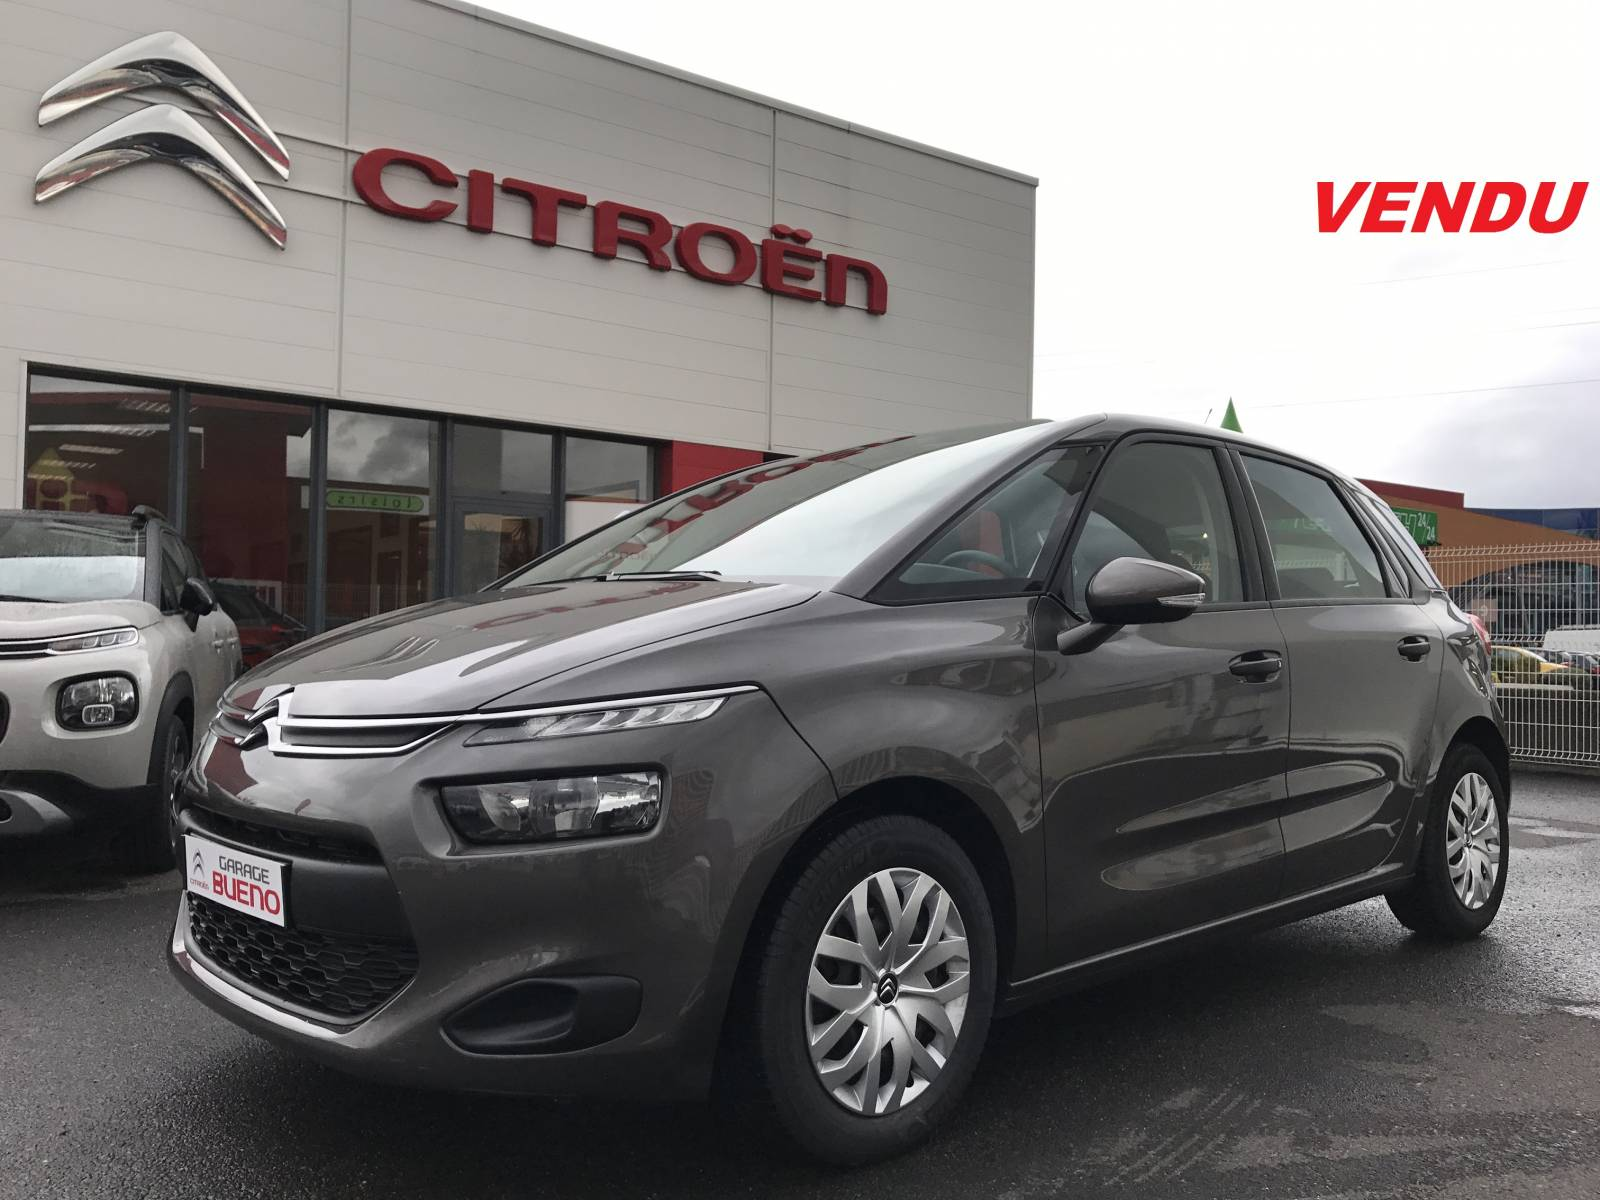 13 990 citro n c4 picasso attraction 1 6 e hdi 115 bvm6 for Garage citroen c4